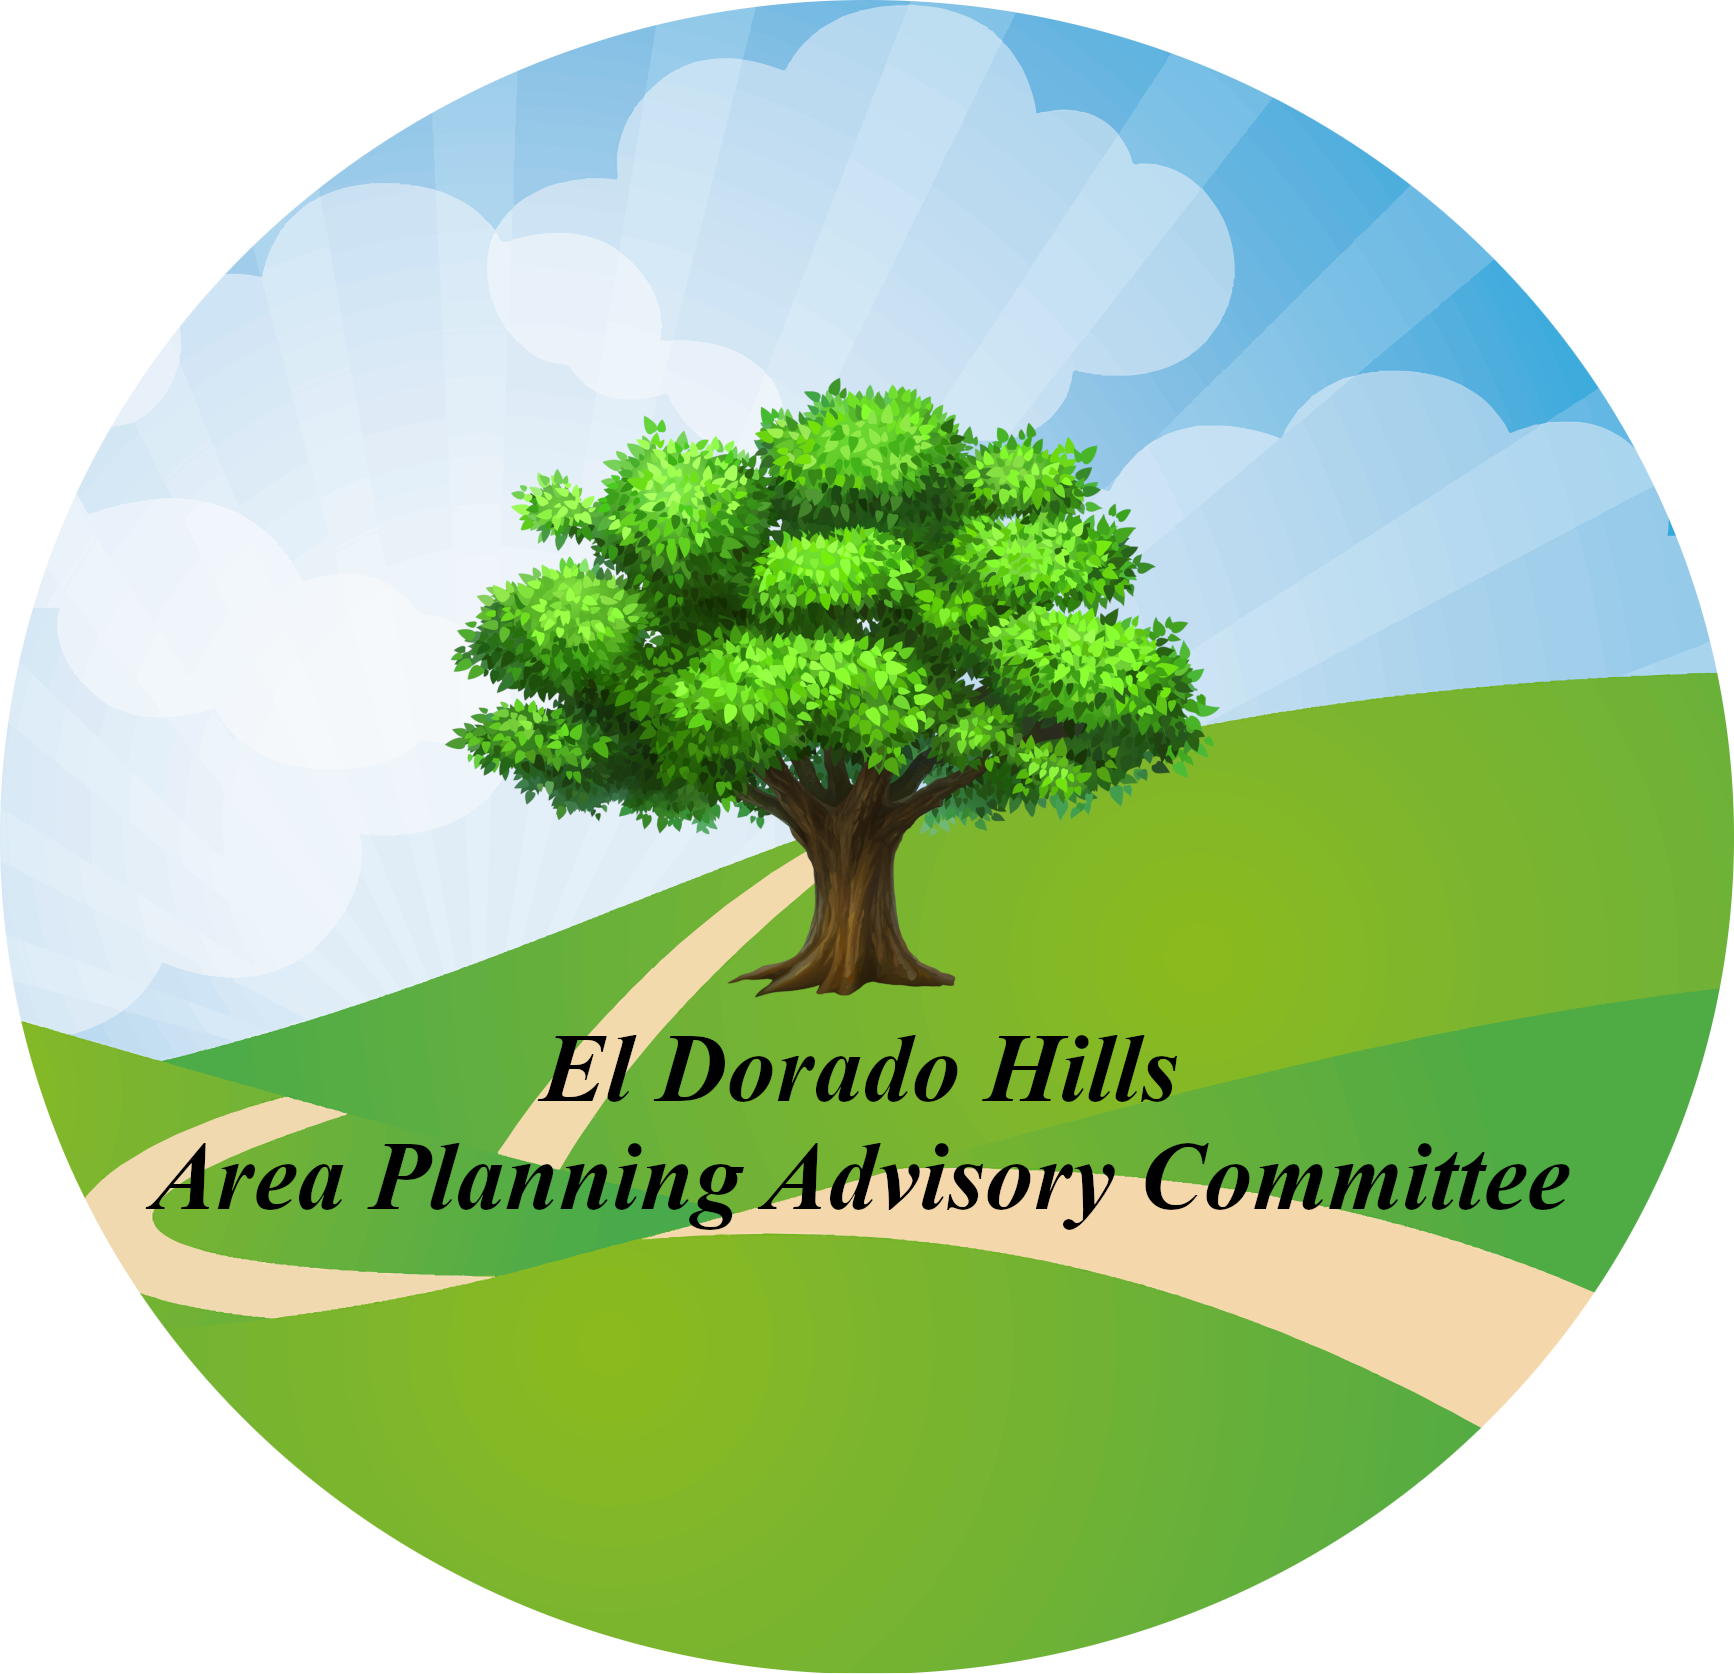 El Dorado Hills Area Planning Advisory Committee